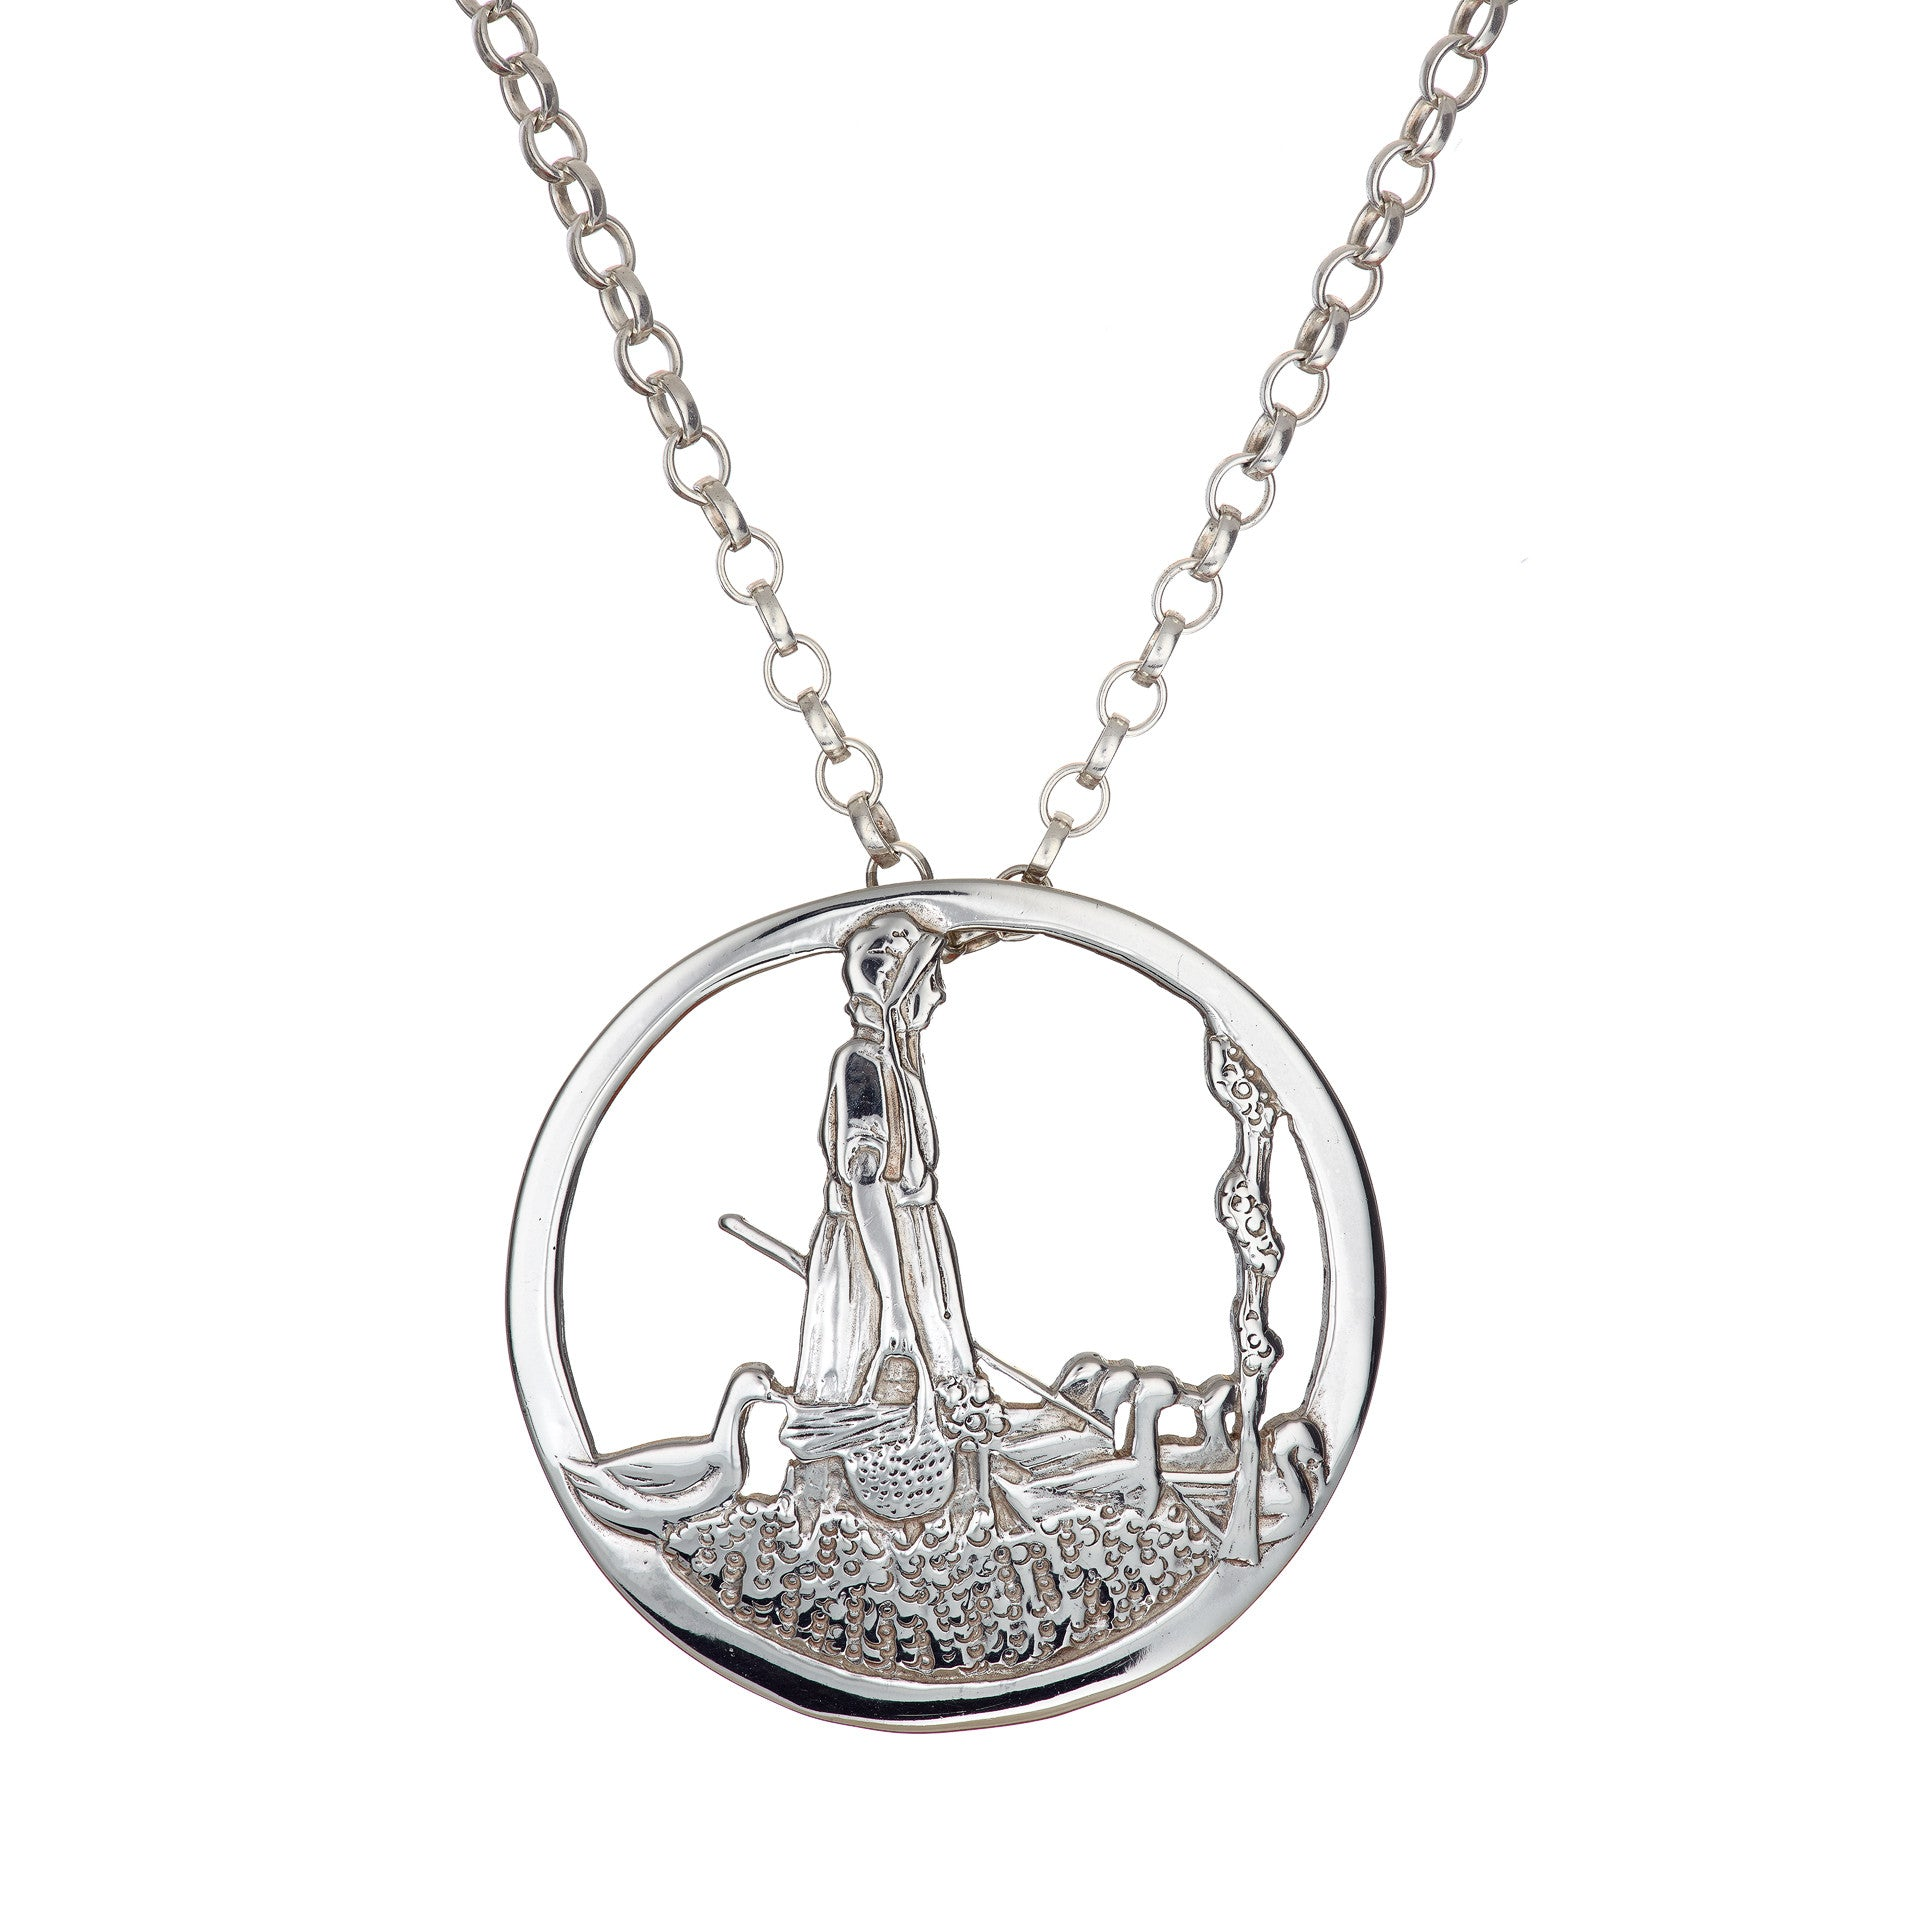 Goose Girl Pendant is handcrafted from Sterling Silver